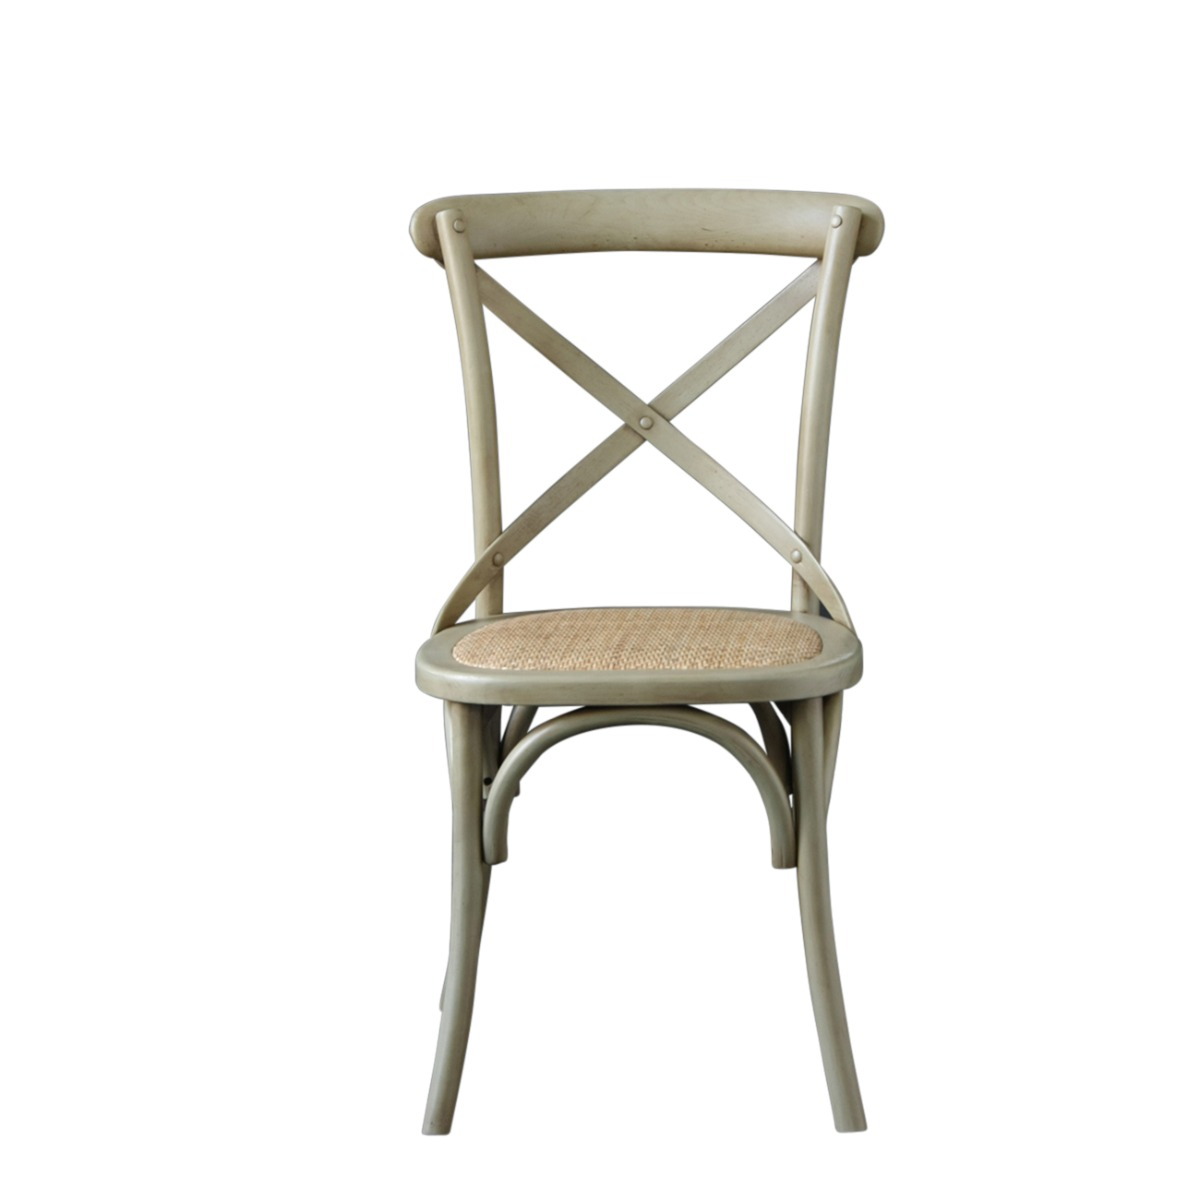 French Cross Back Bentwood Dining Chair, Café / Restaurant / Kitchen / Bistro, Metal Cross Back, Metal Grey